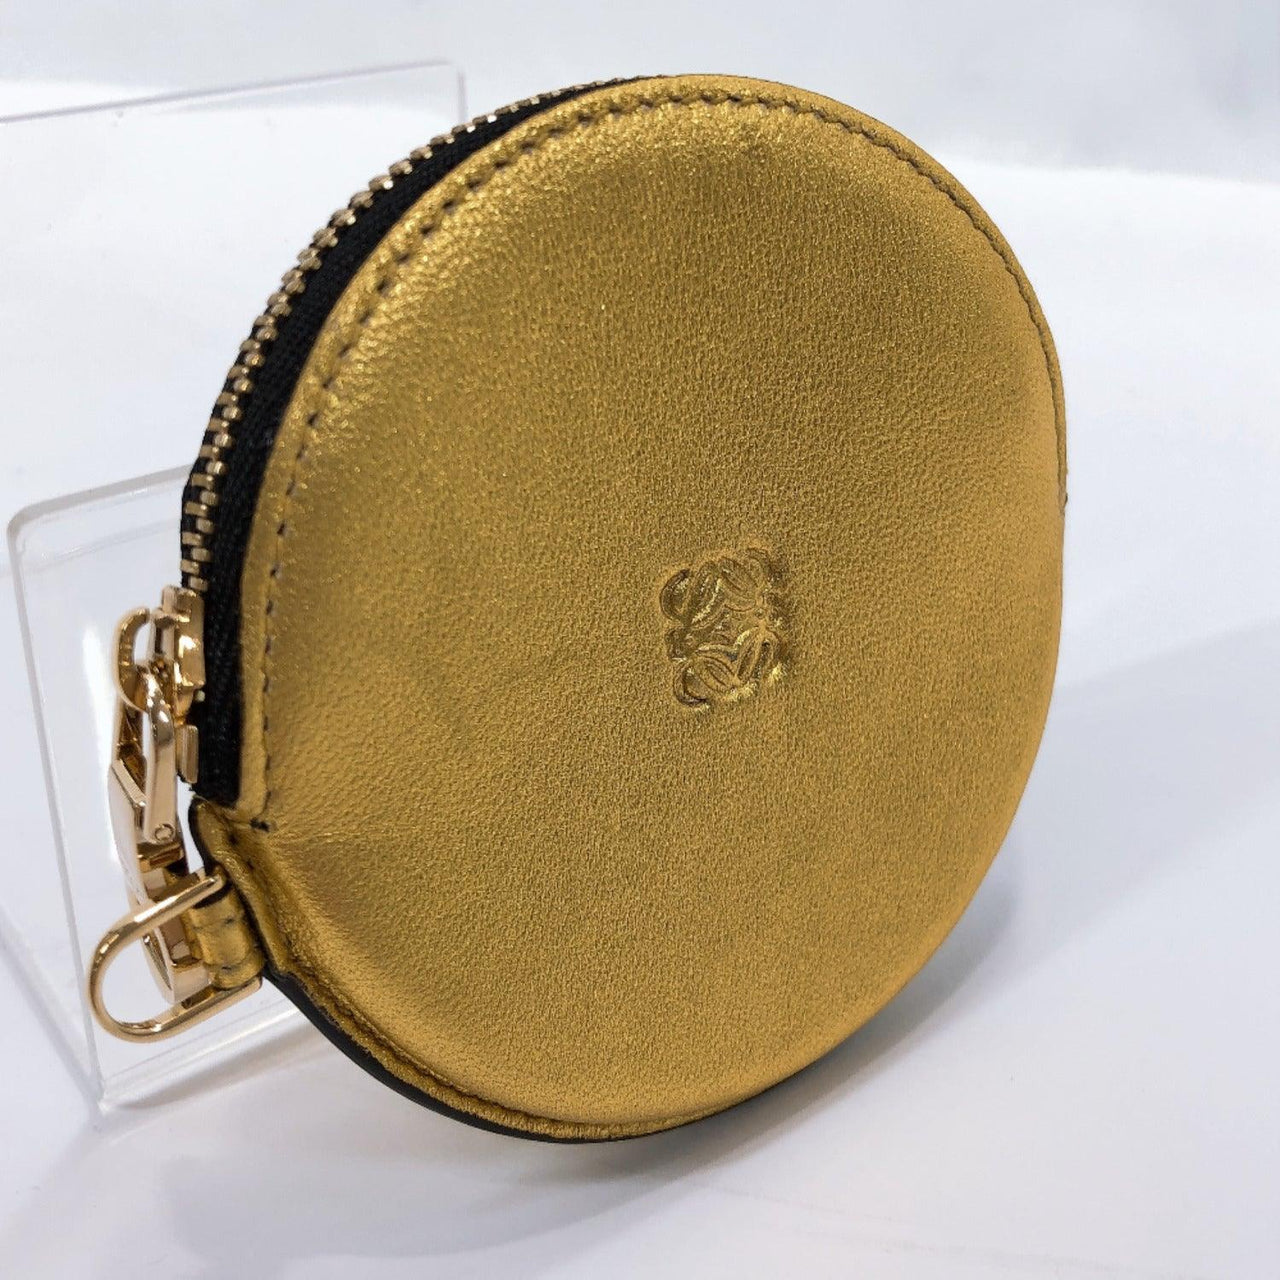 LOEWE coin purse leather gold Women Used